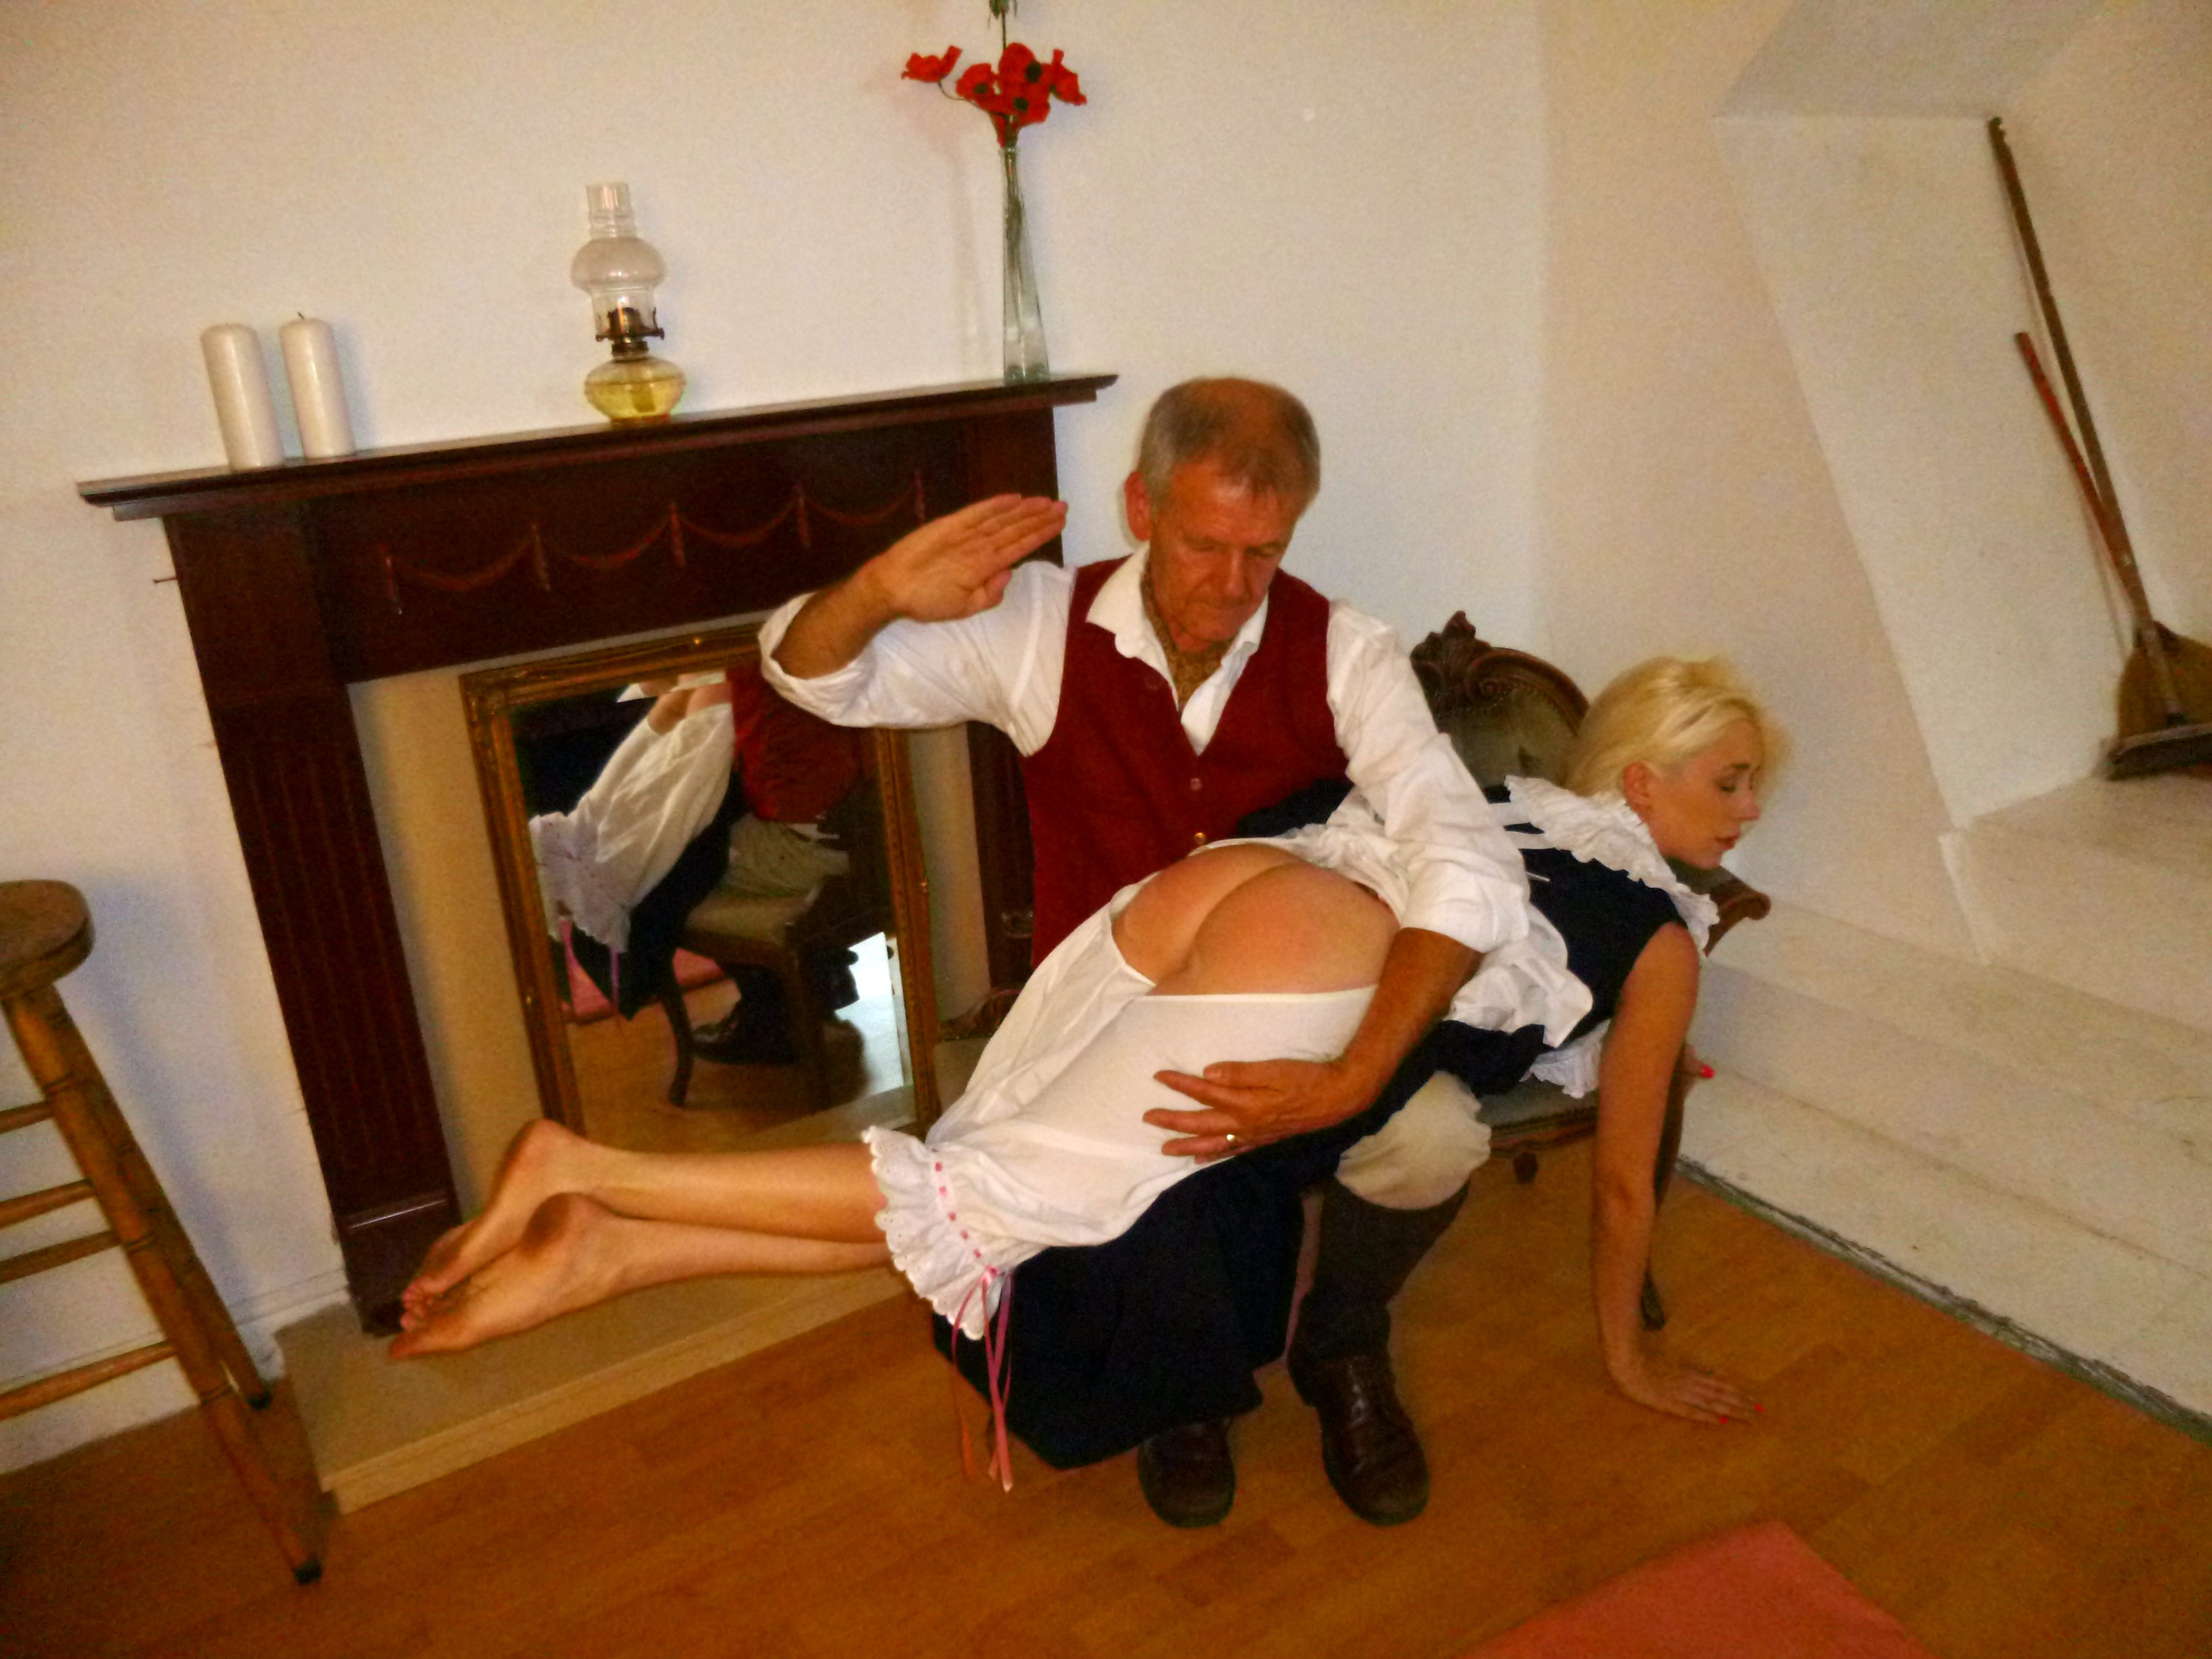 French dressed undressed wives